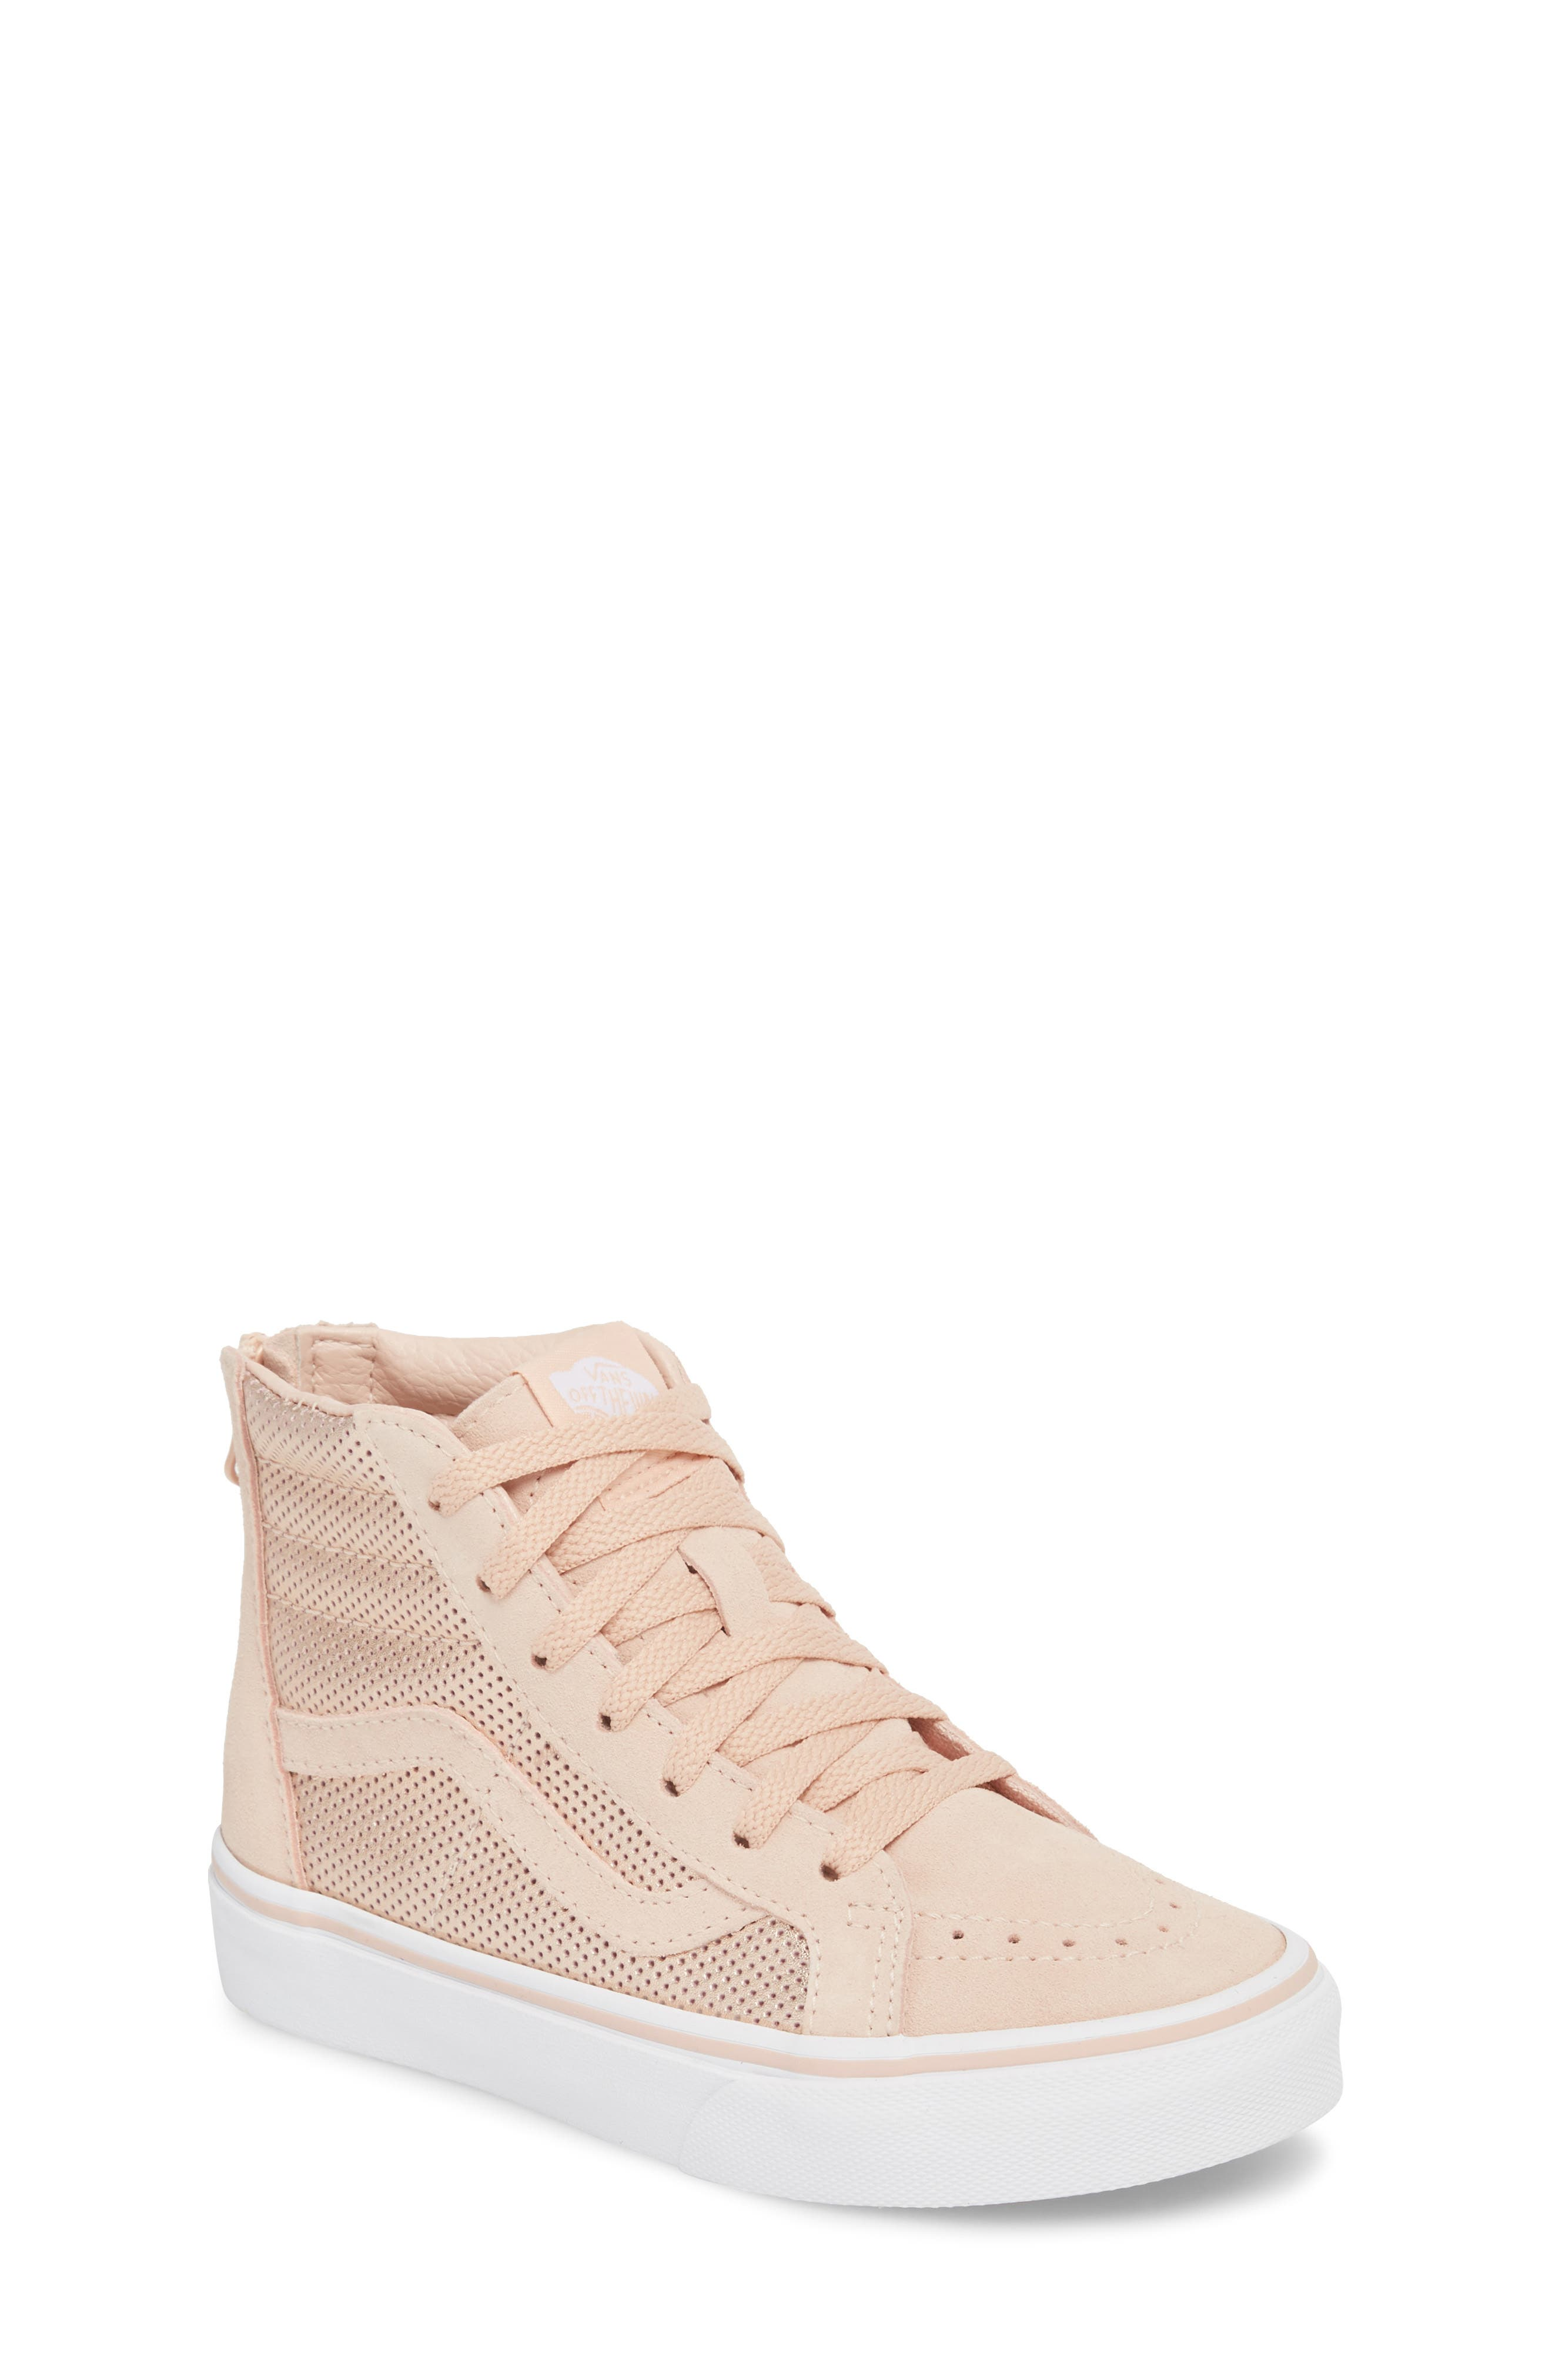 SK8-Hi Zip Sneaker,                             Main thumbnail 1, color,                             ROSE GOLD SUEDE LEATHER